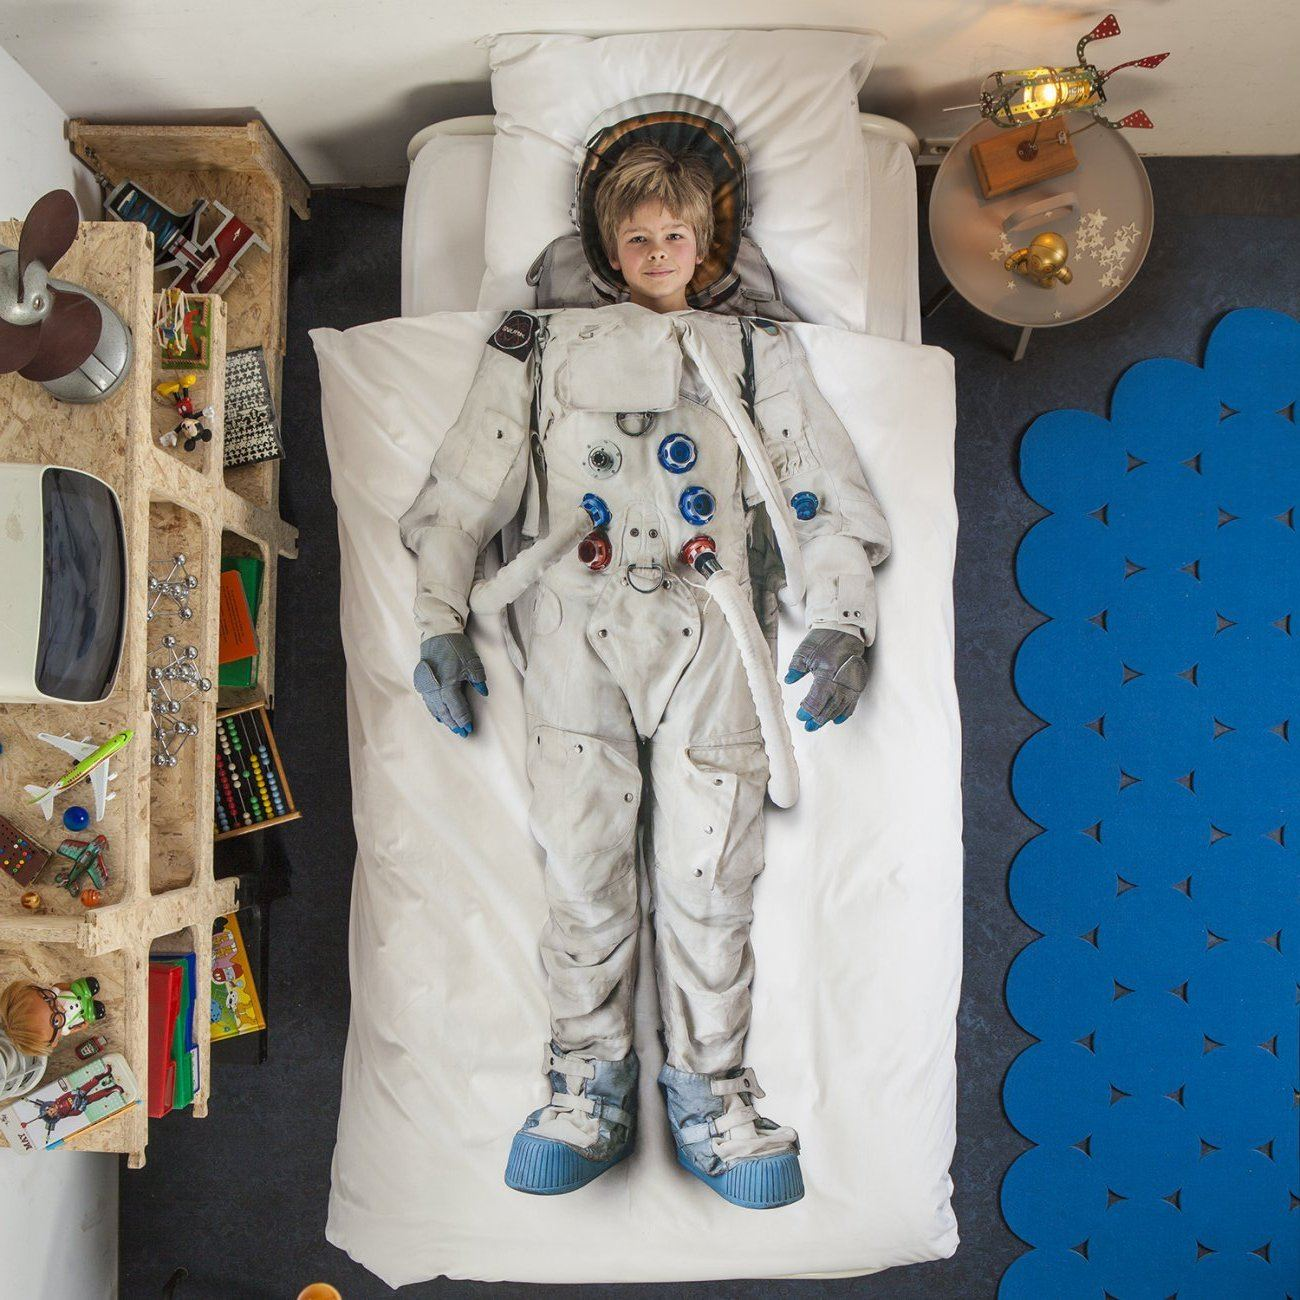 Astronaut Duvet Cover & Pillow Case - souzu.co.uk